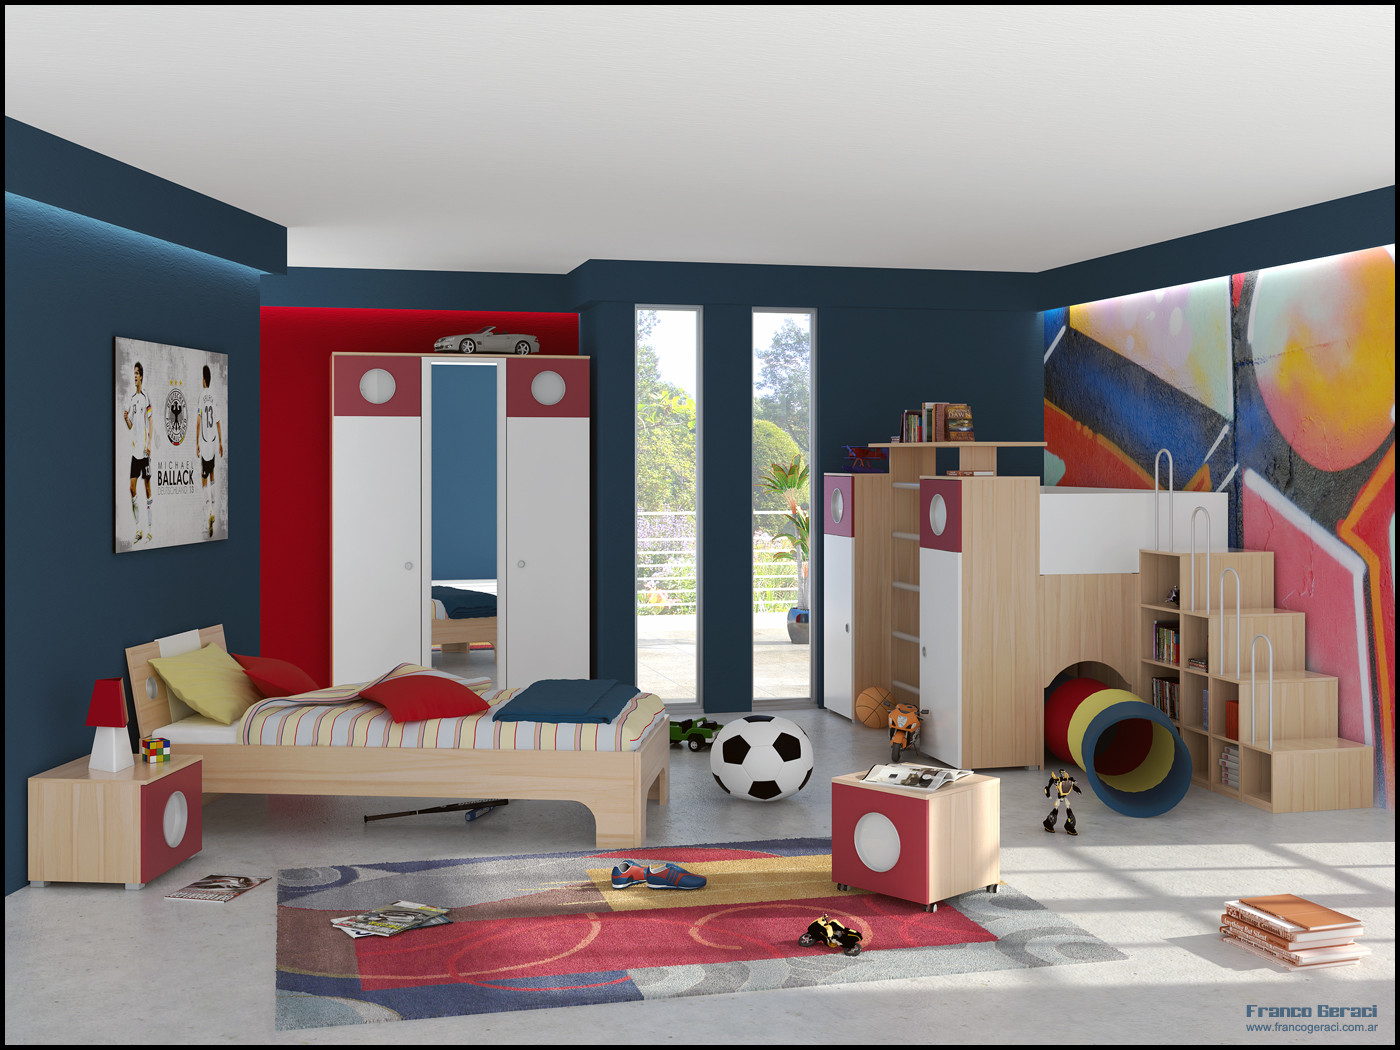 Best ideas about Kids Room Ideas . Save or Pin Kids Room Inspiration Now.